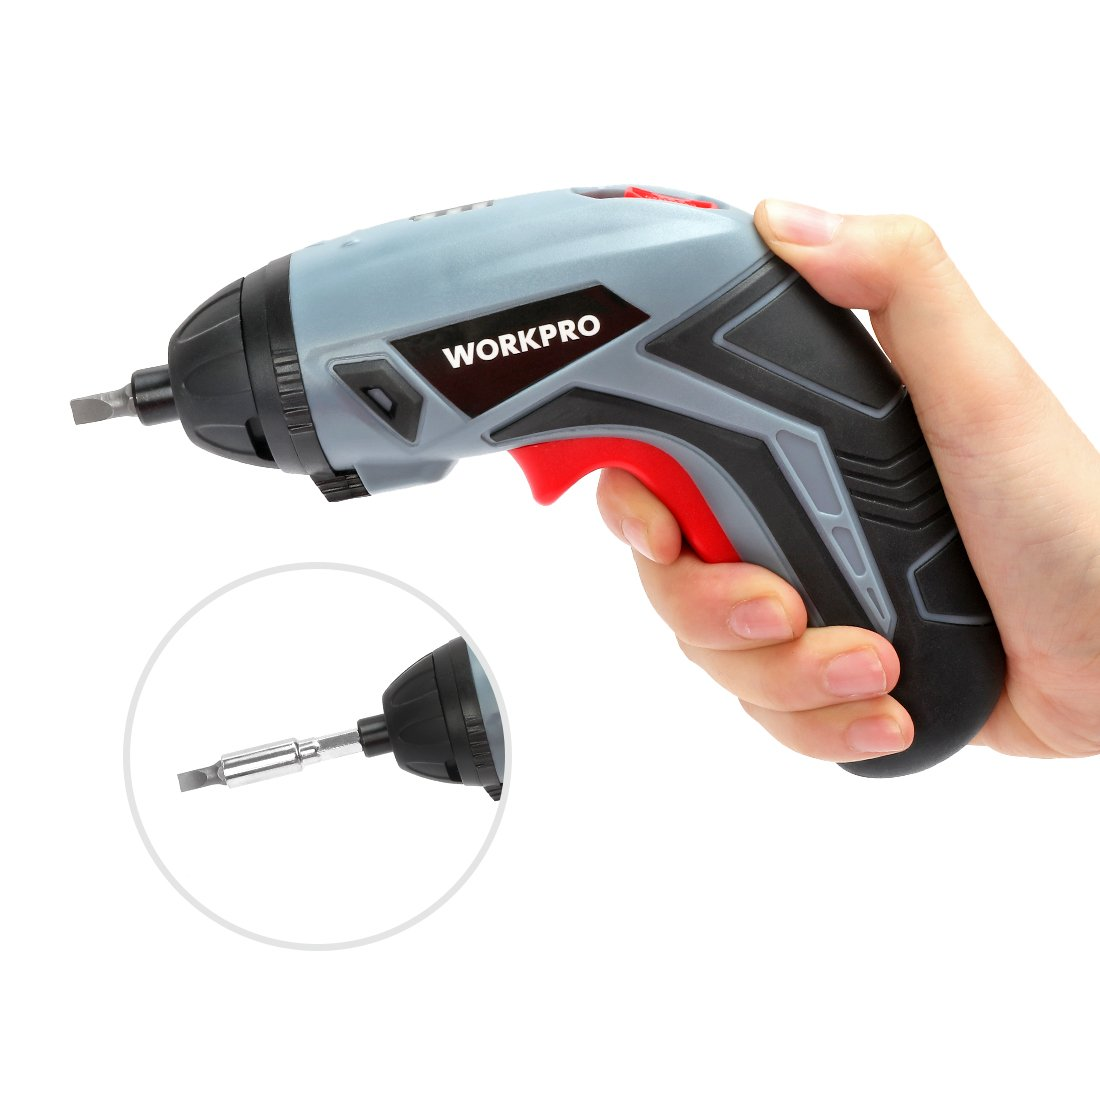 WORKPRO Cordless Rechargeable Screwdriver, Powered by 3.6V Li-ion Battery, USB Charging Cable and 10-piece Bits Included by WORKPRO (Image #4)